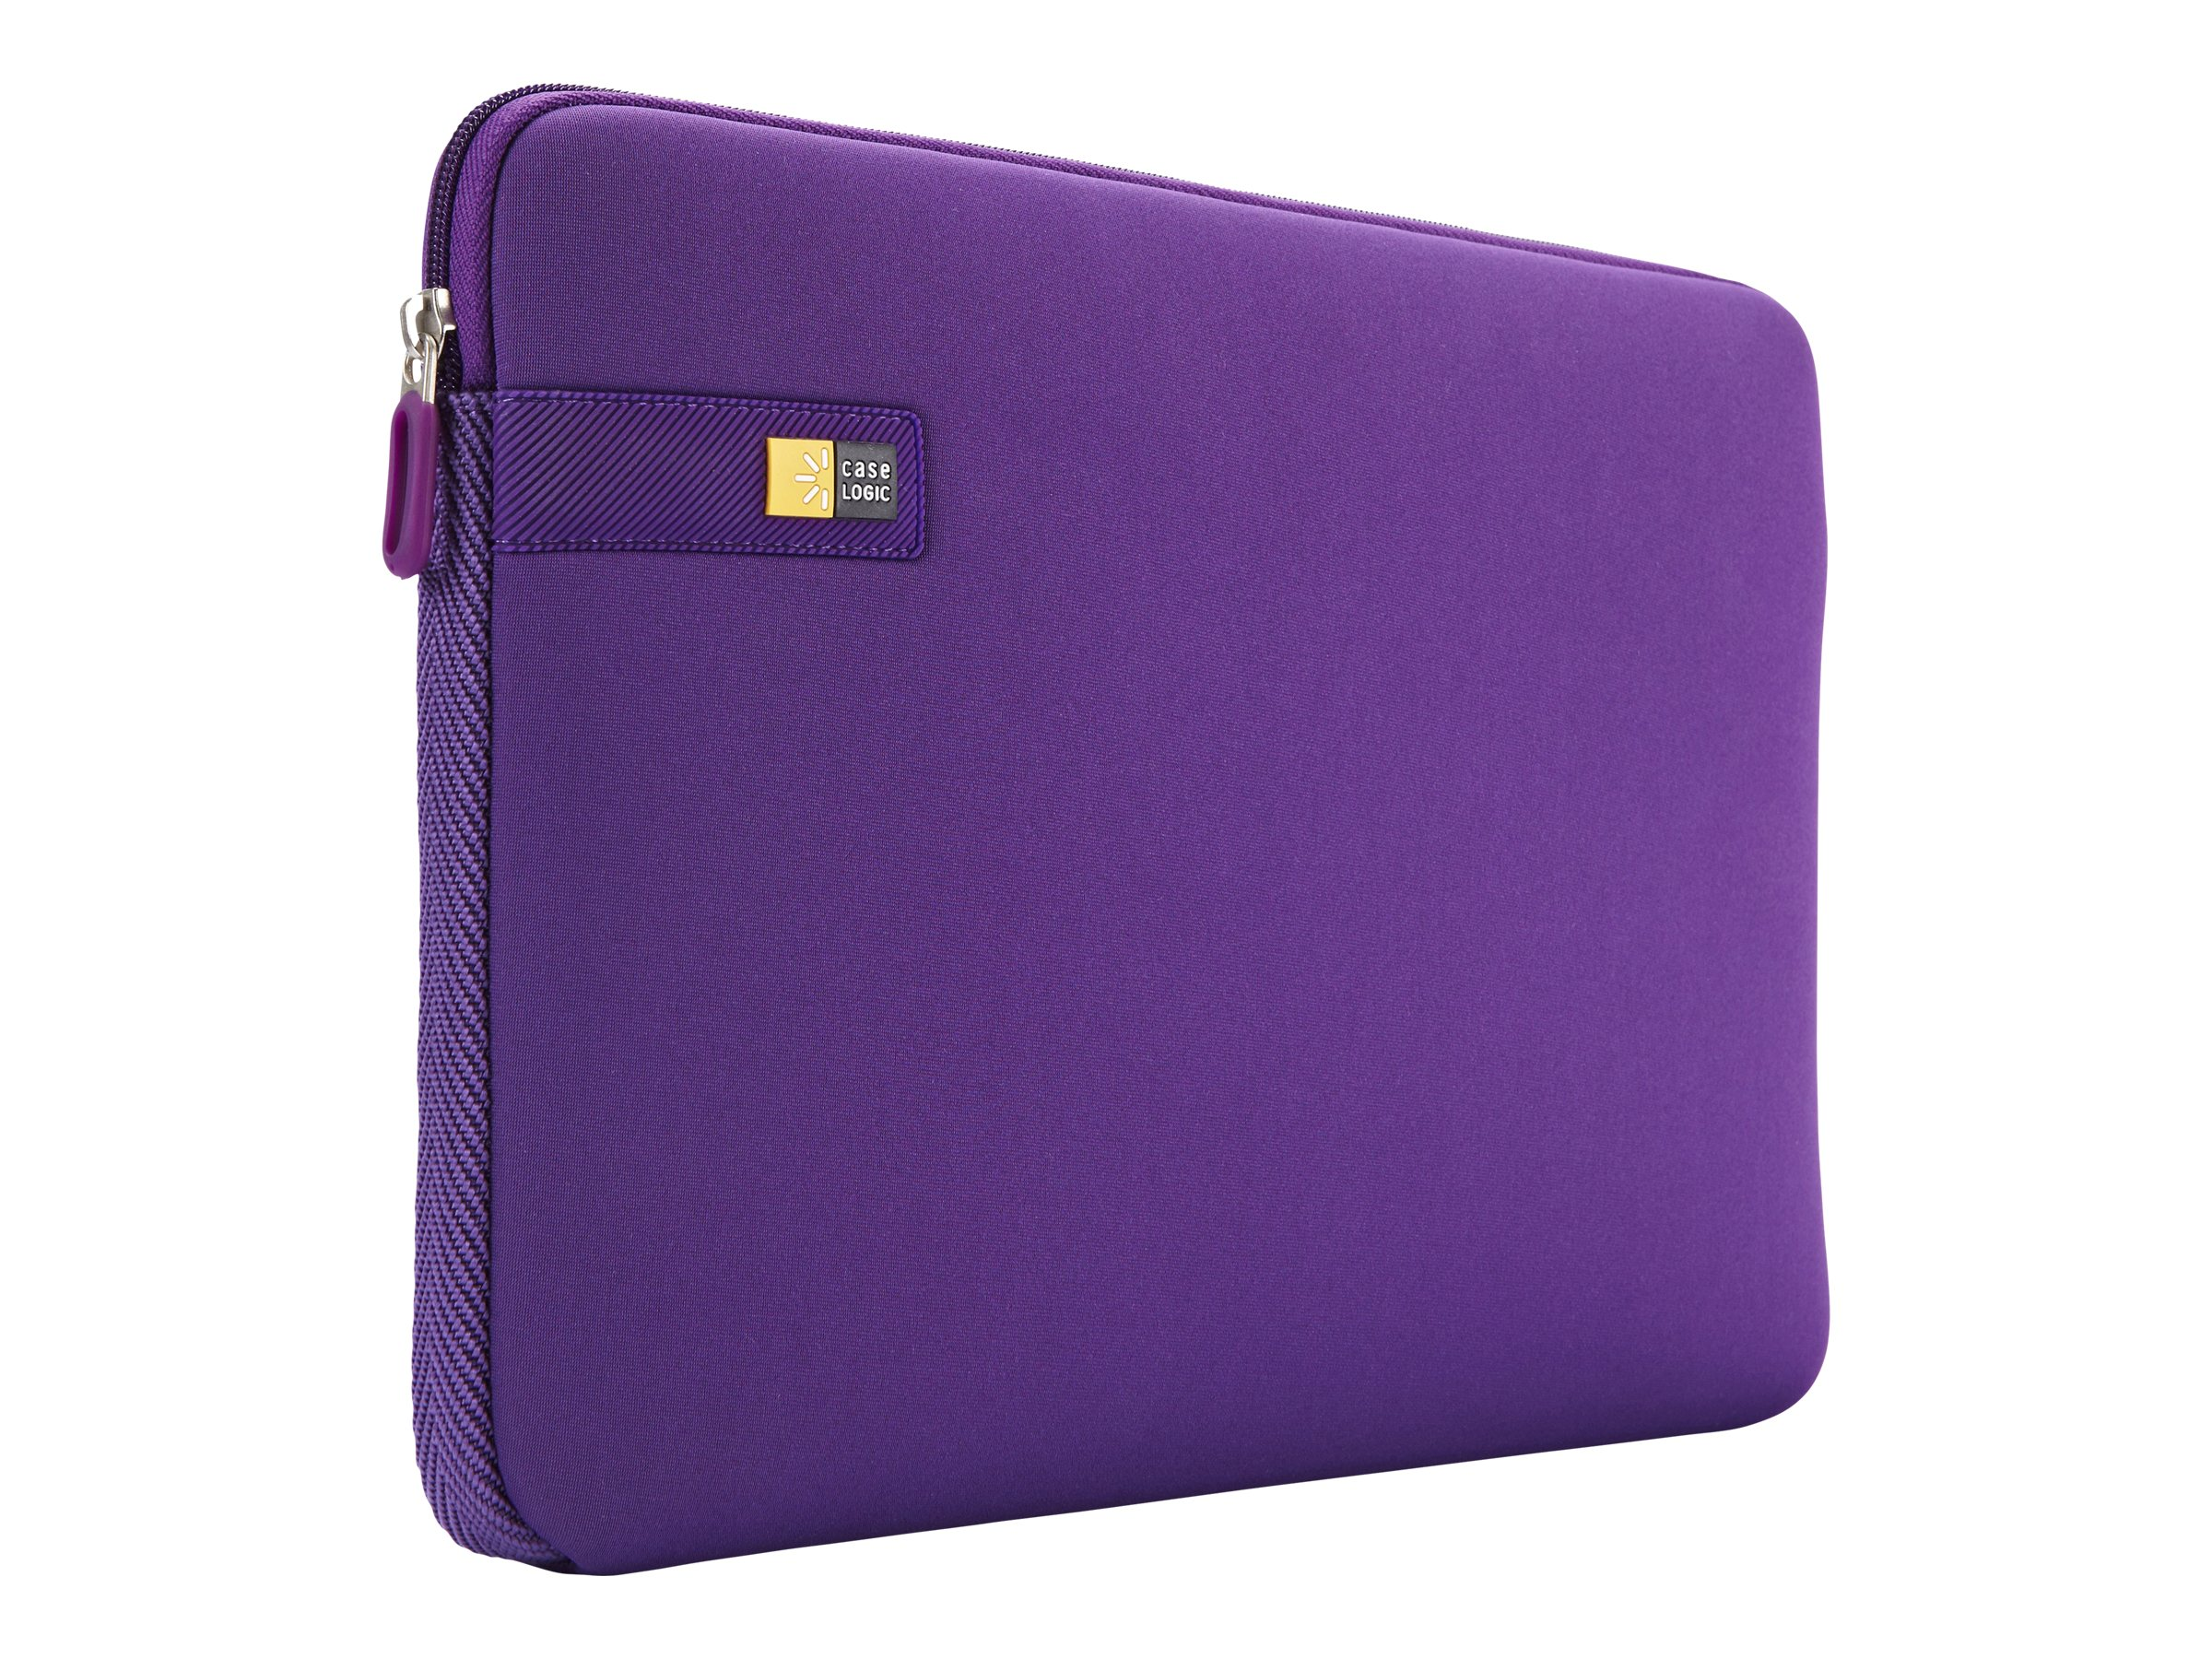 Case Logic 13.3 Laptop Sleeve, Purple